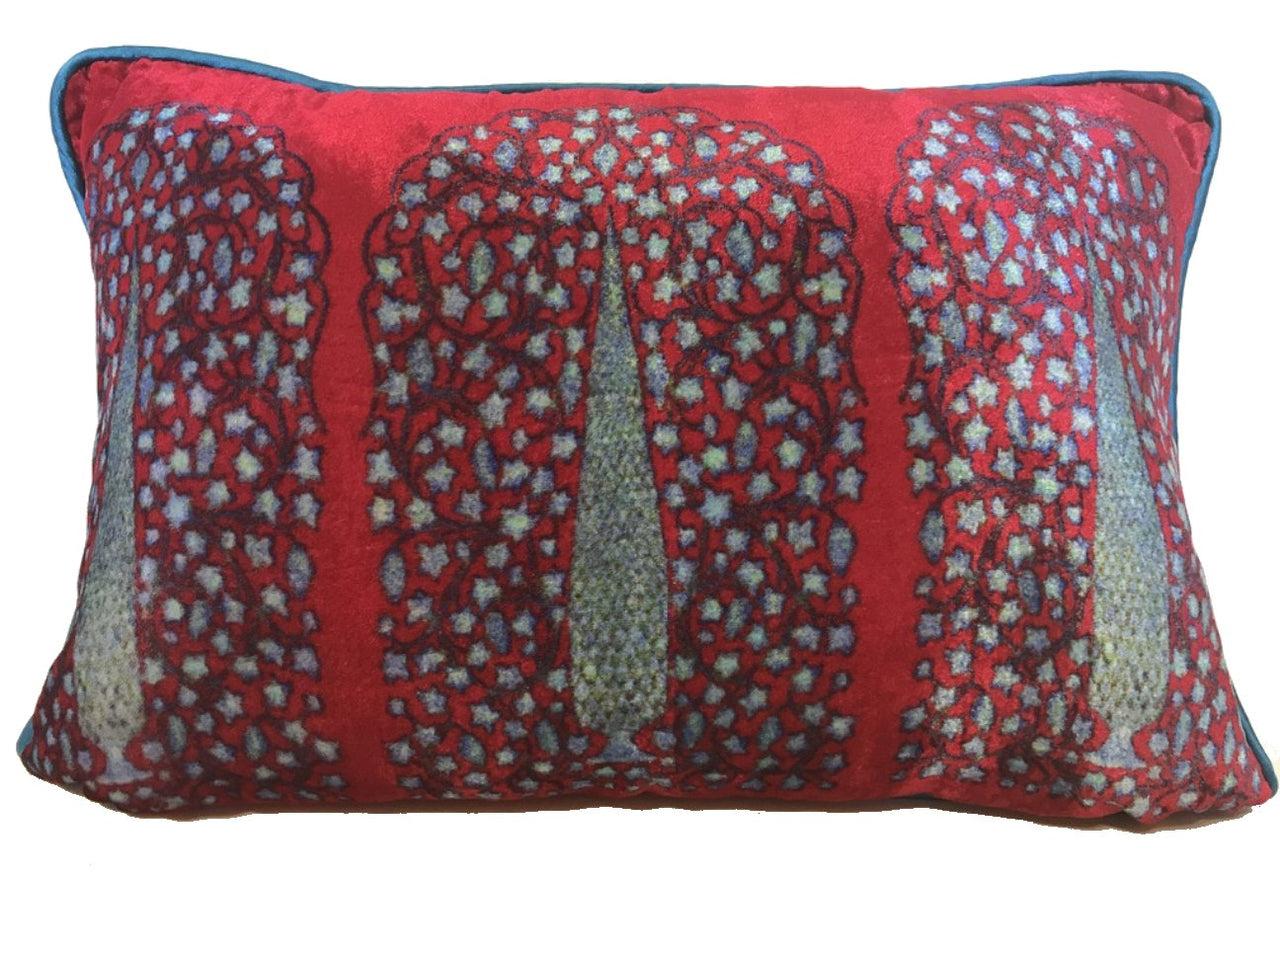 Velvet Cushion 12x18 Blue Cypress on red background - Maison Fusion